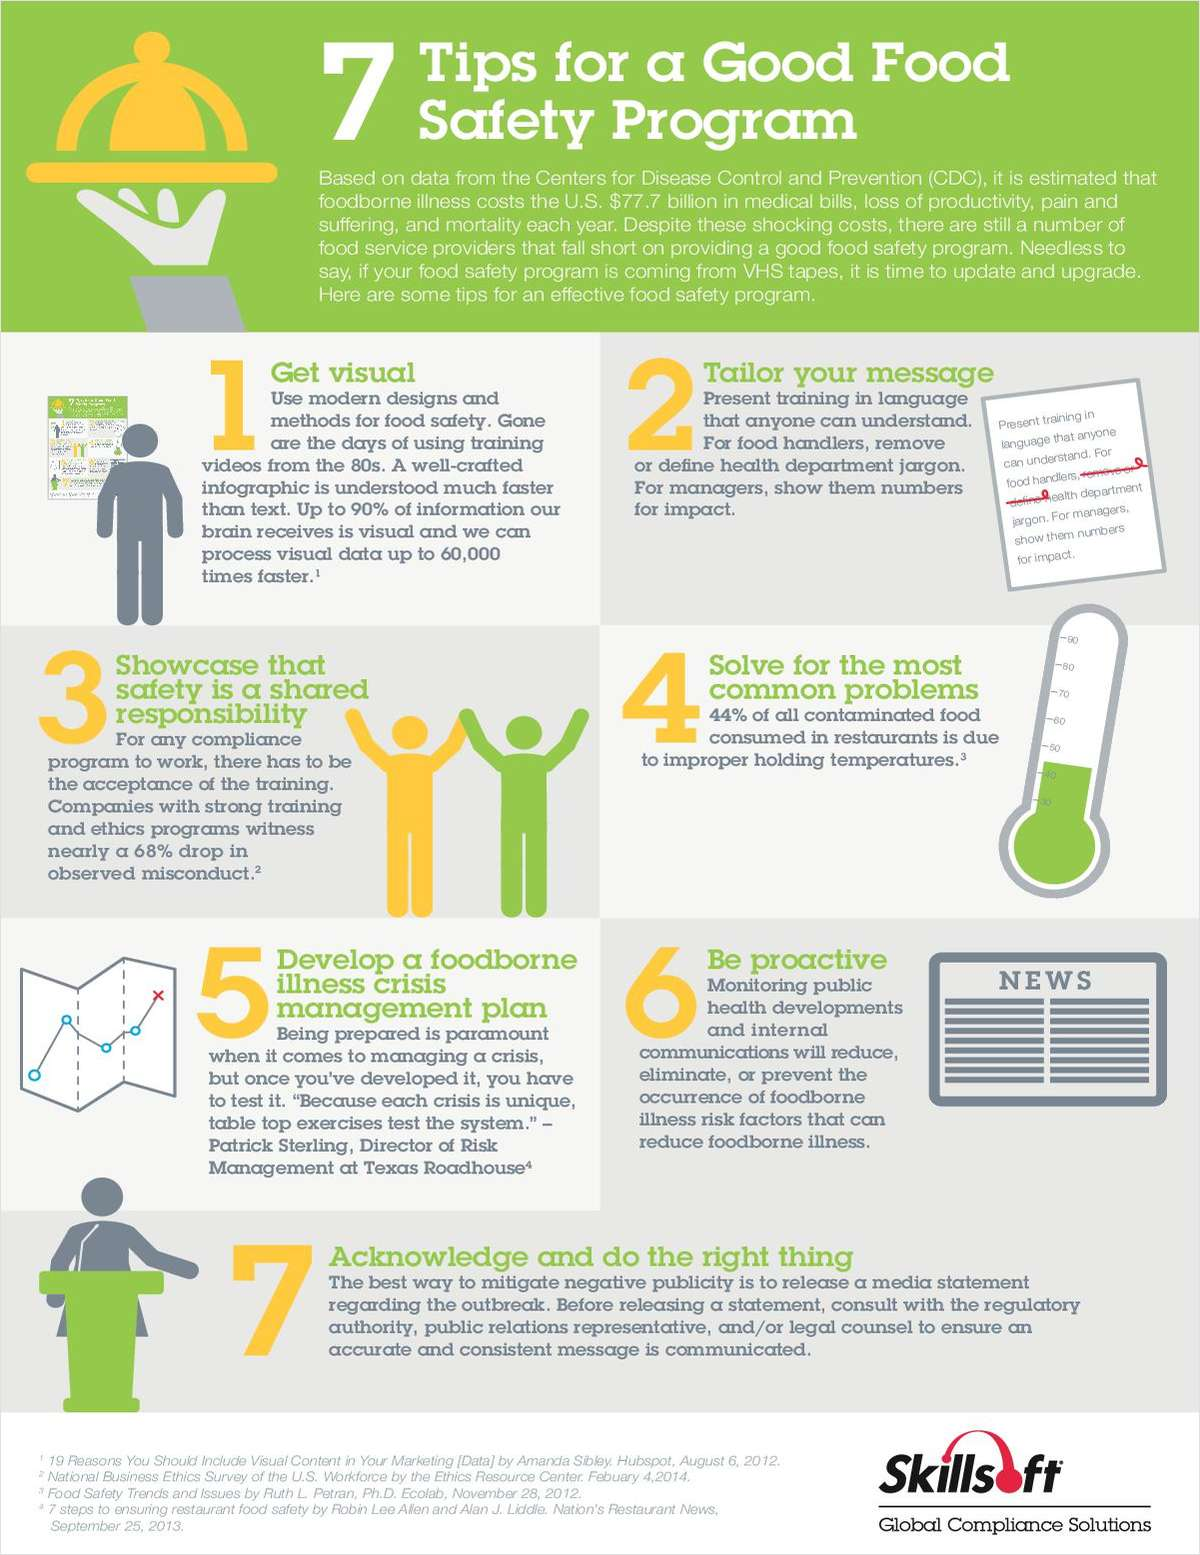 7 Tips for a Good Food Safety Program